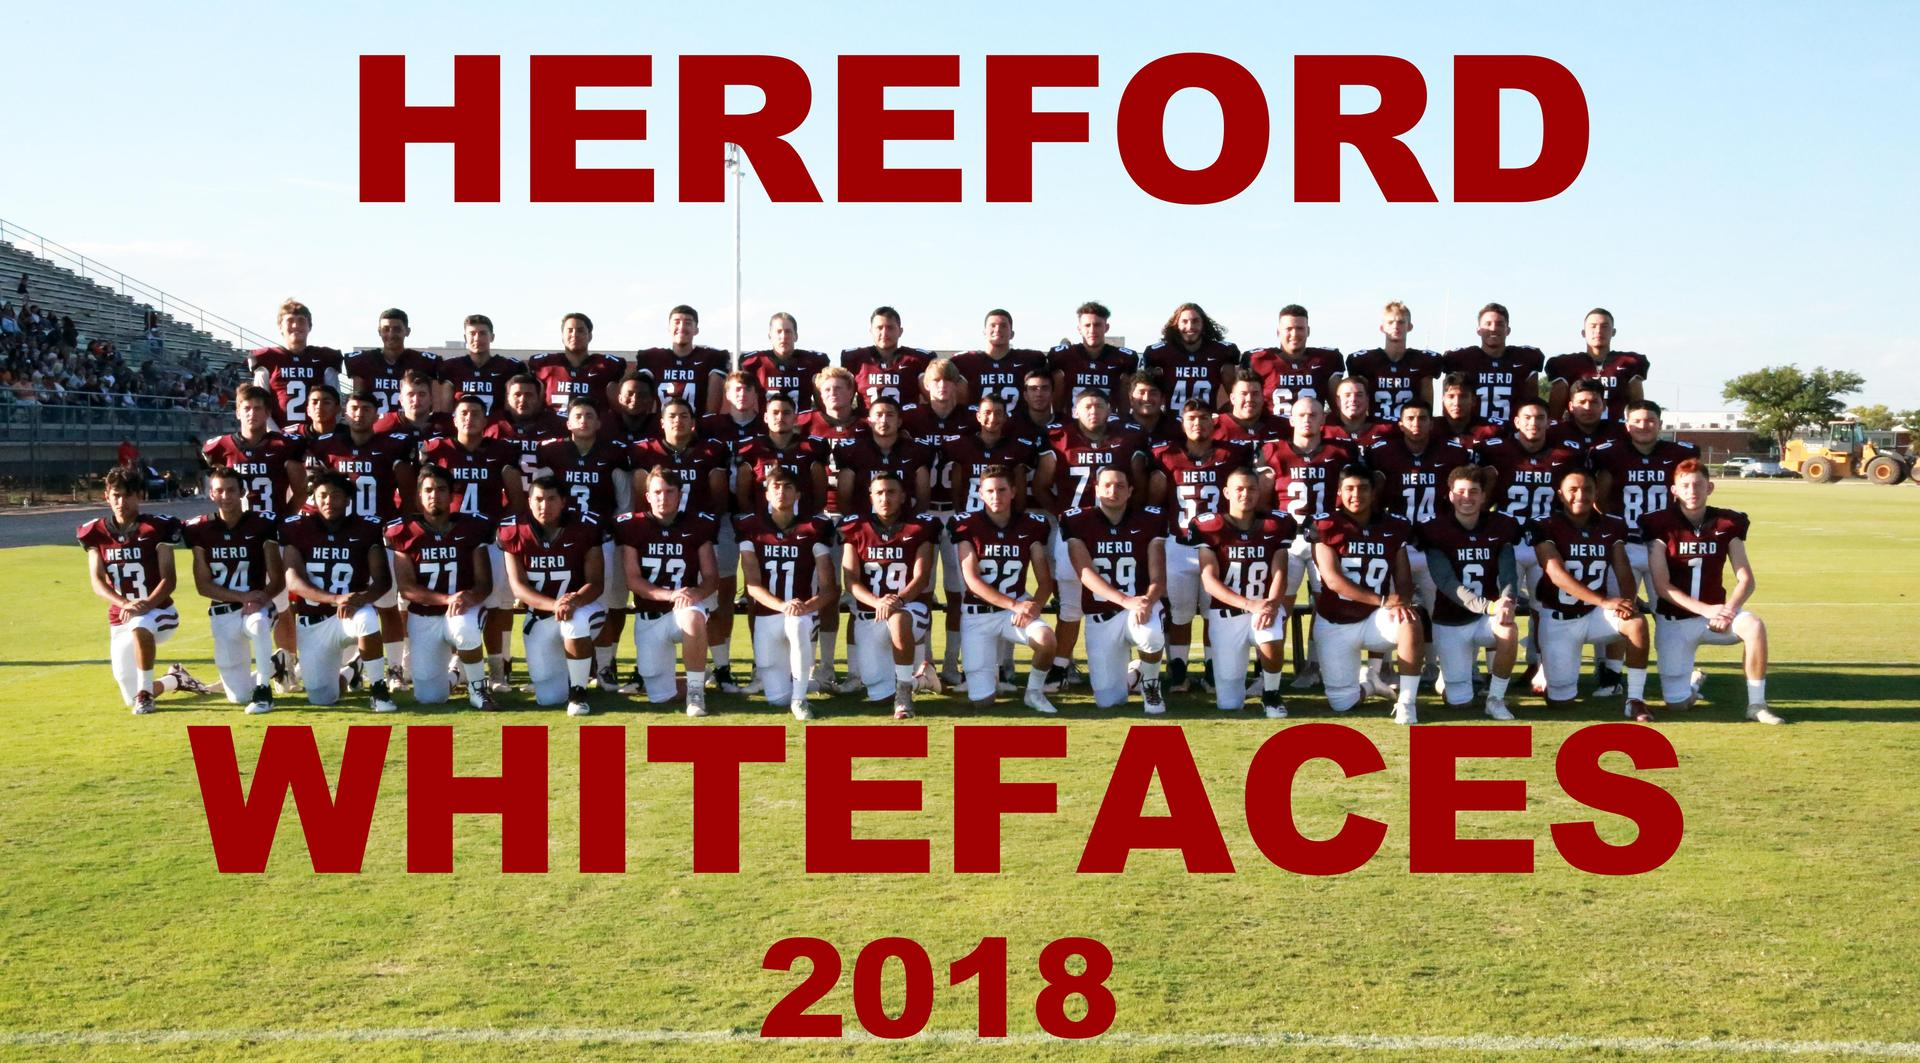 HEREFORD WHITEFACES